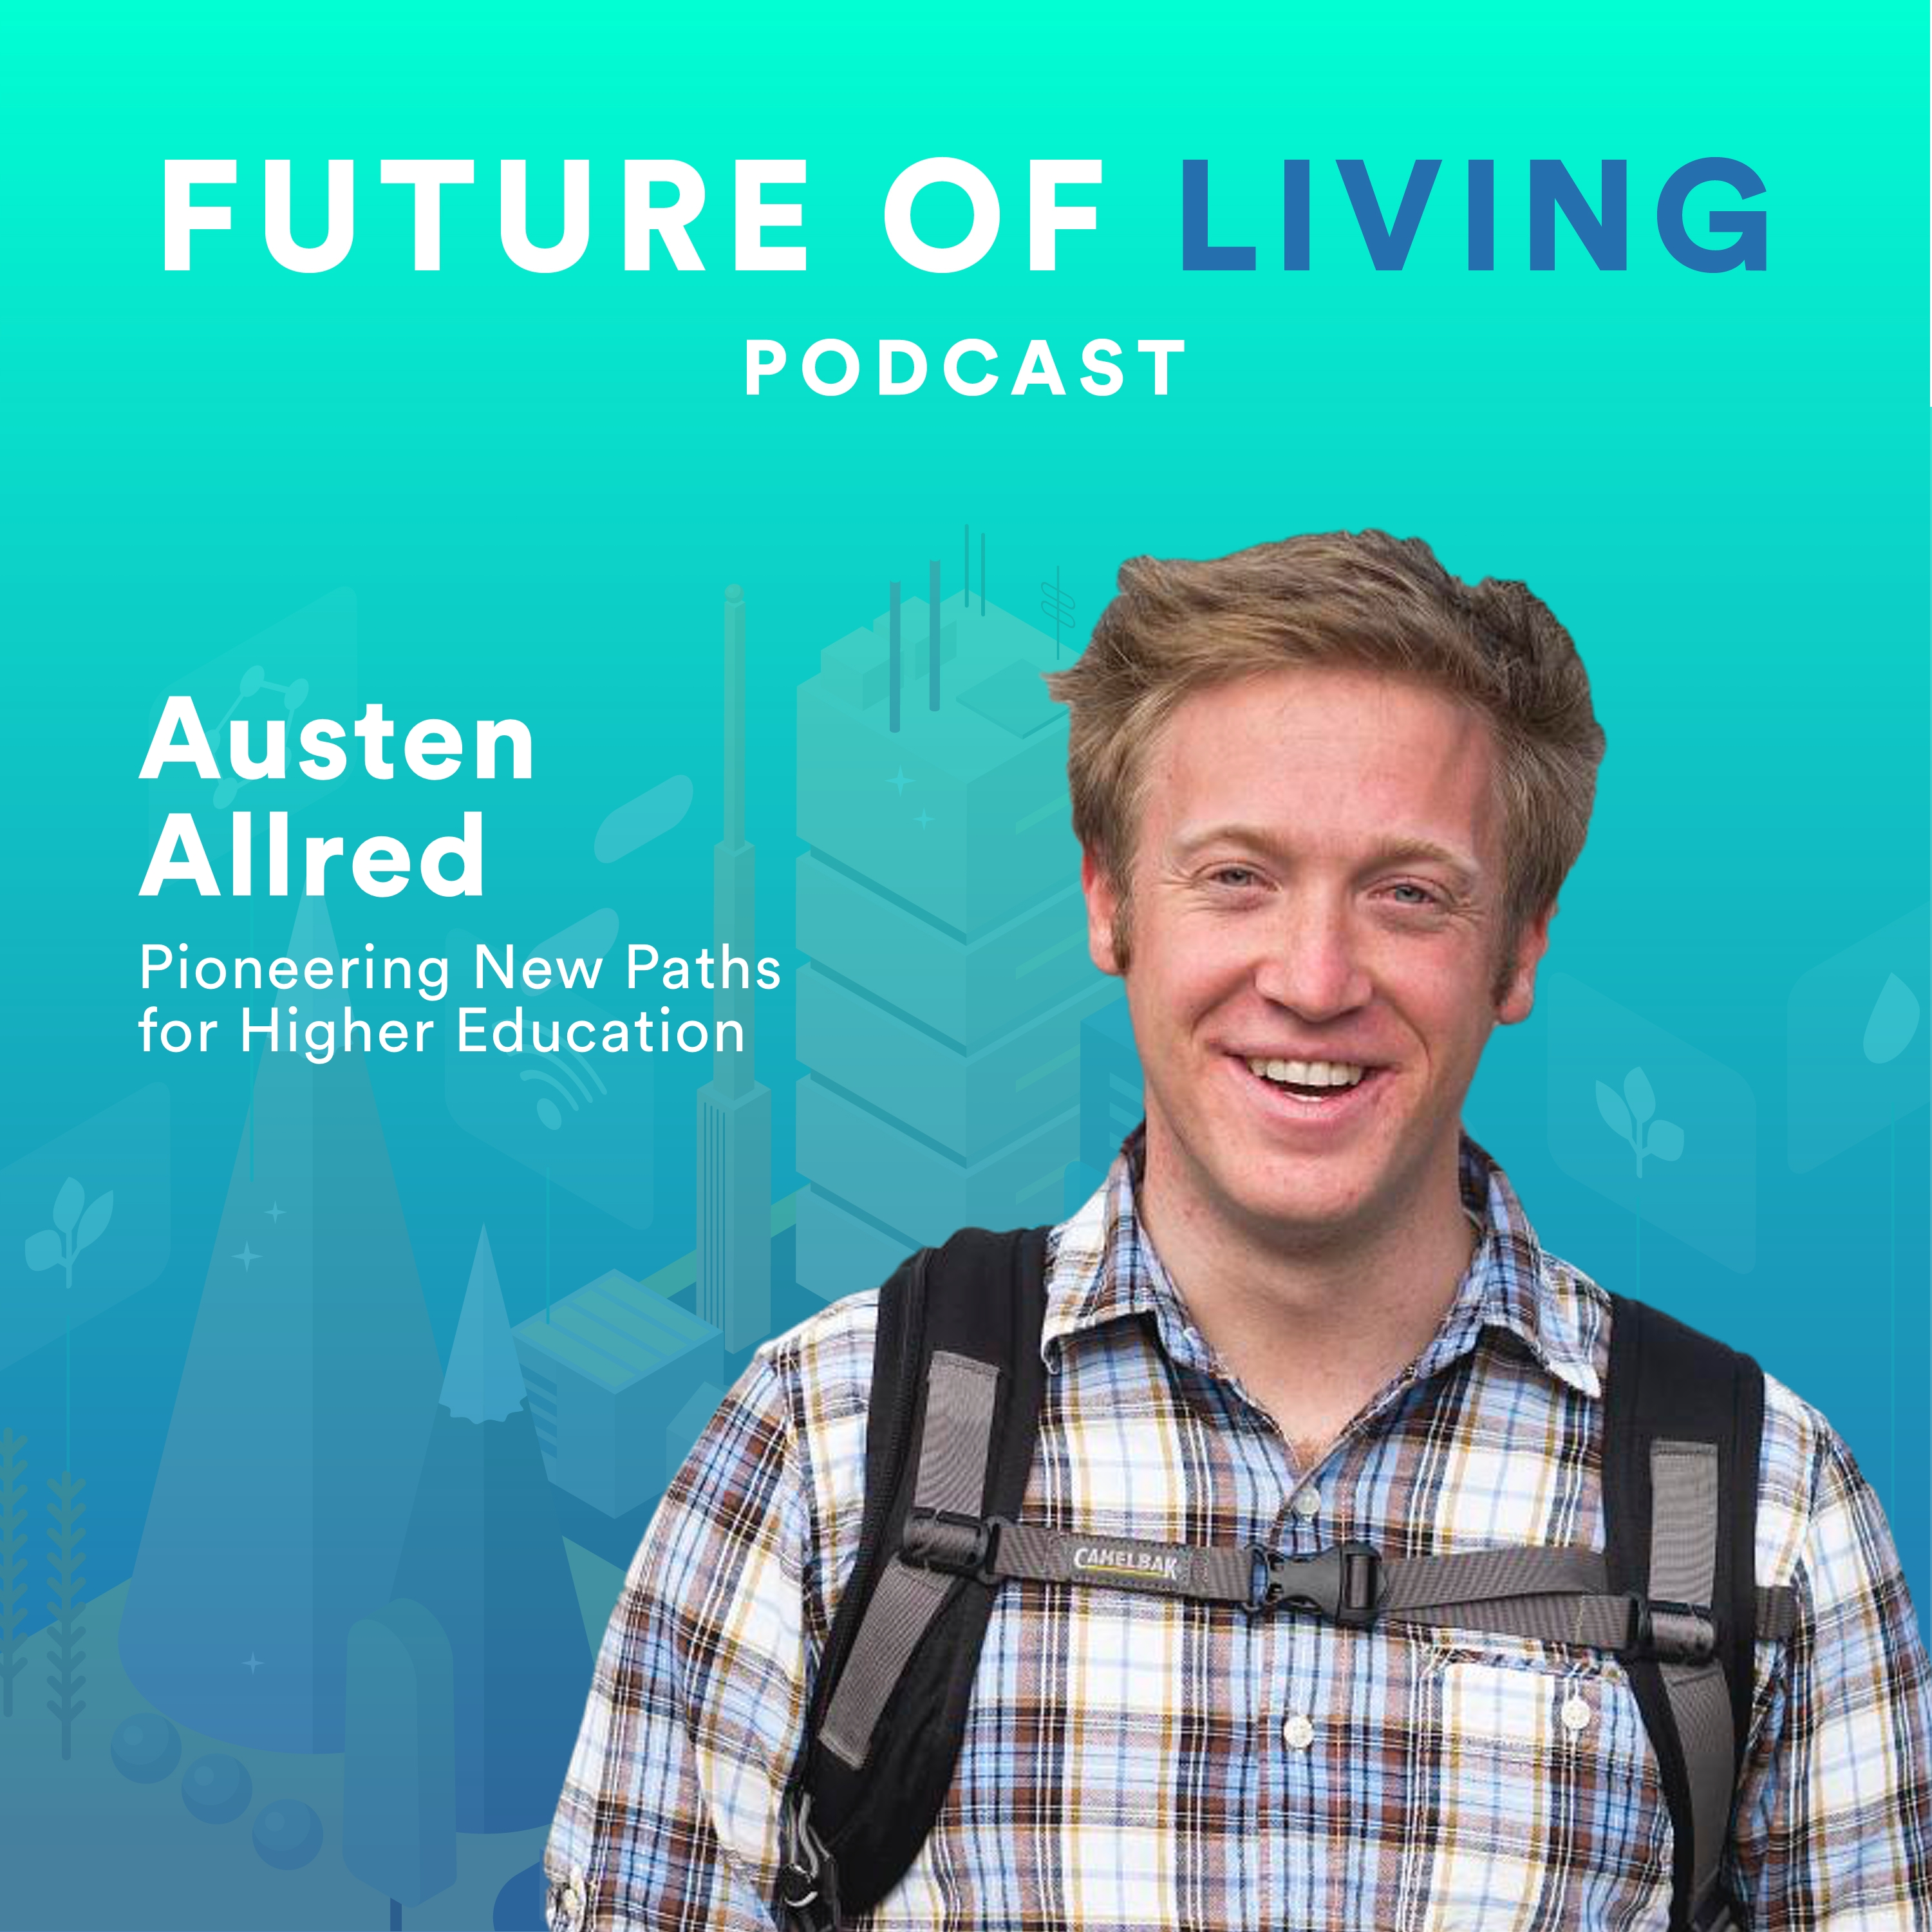 Austen Allred on Pioneering New Paths for Higher Education